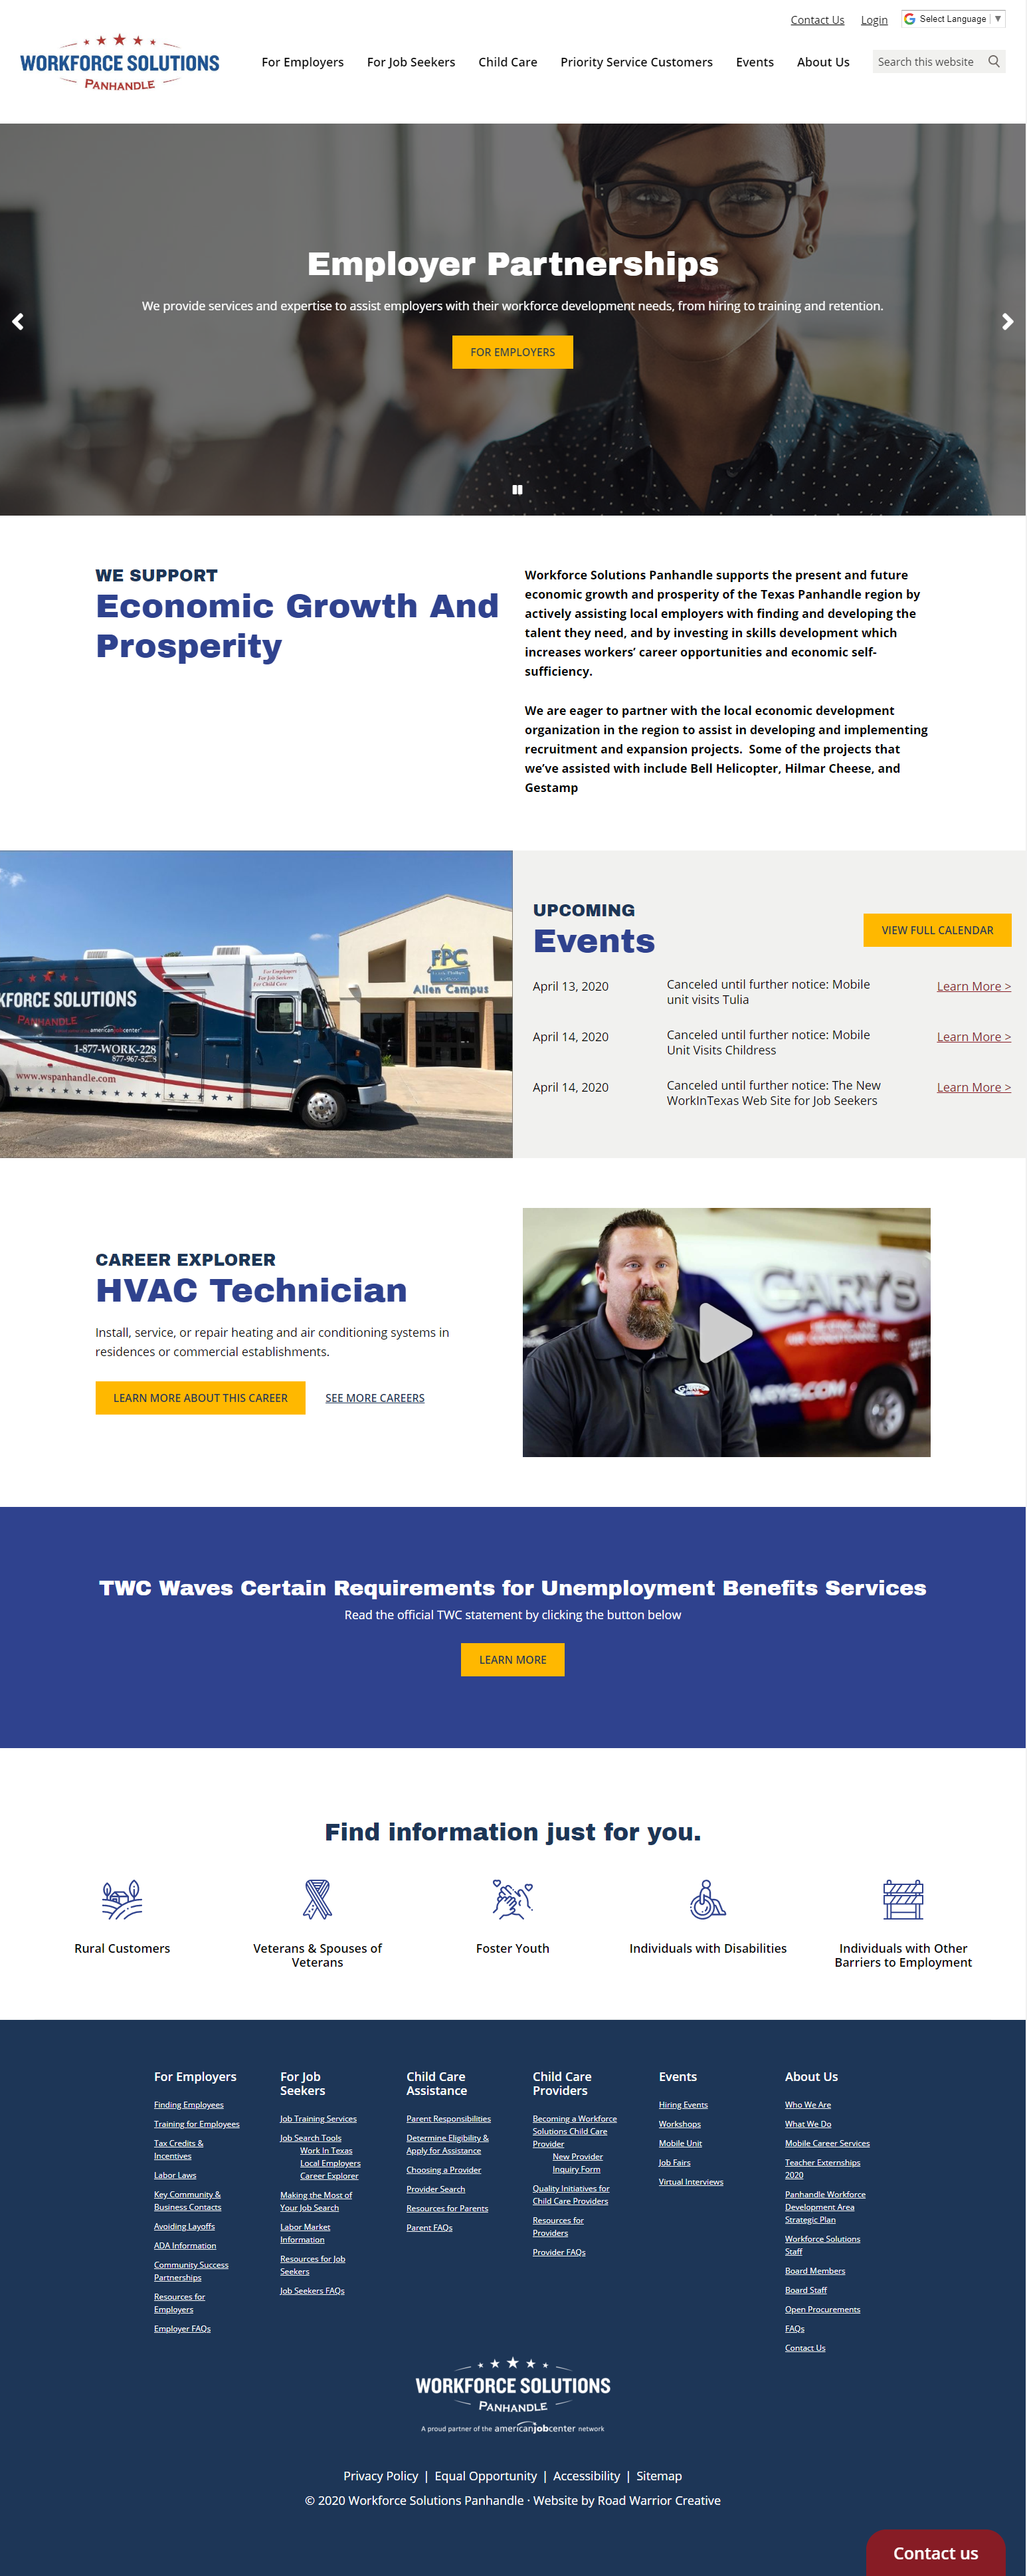 workforce solutions home page